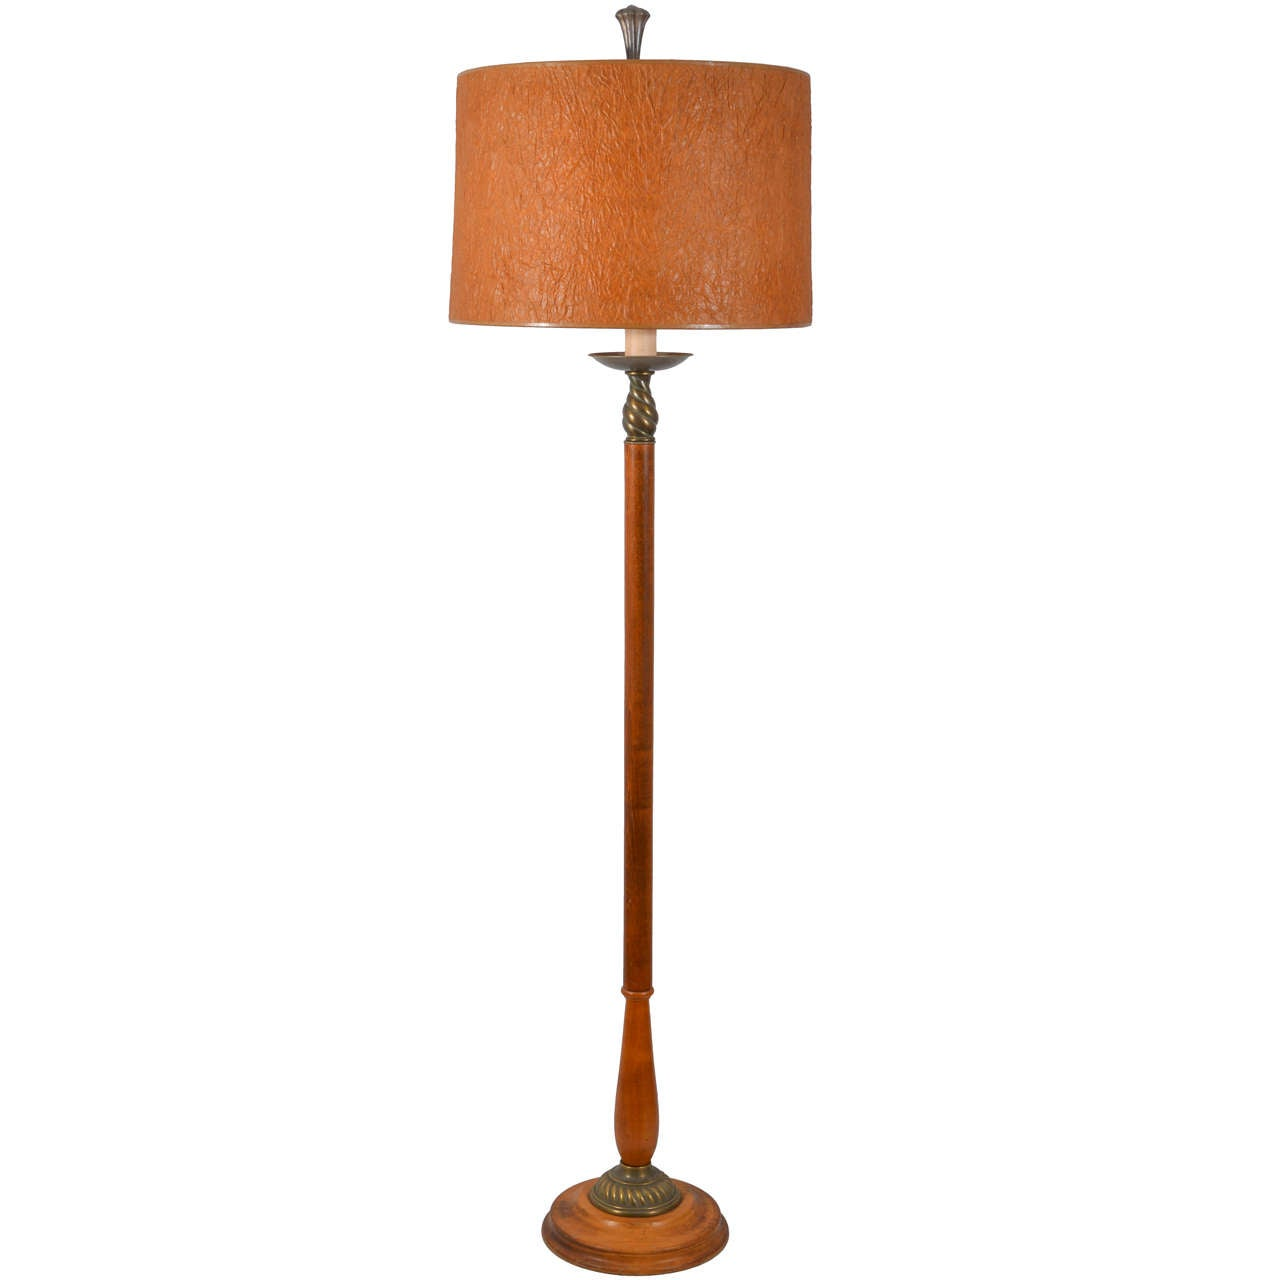 Wooden art deco floor lamp at 1stdibs Wood floor lamp